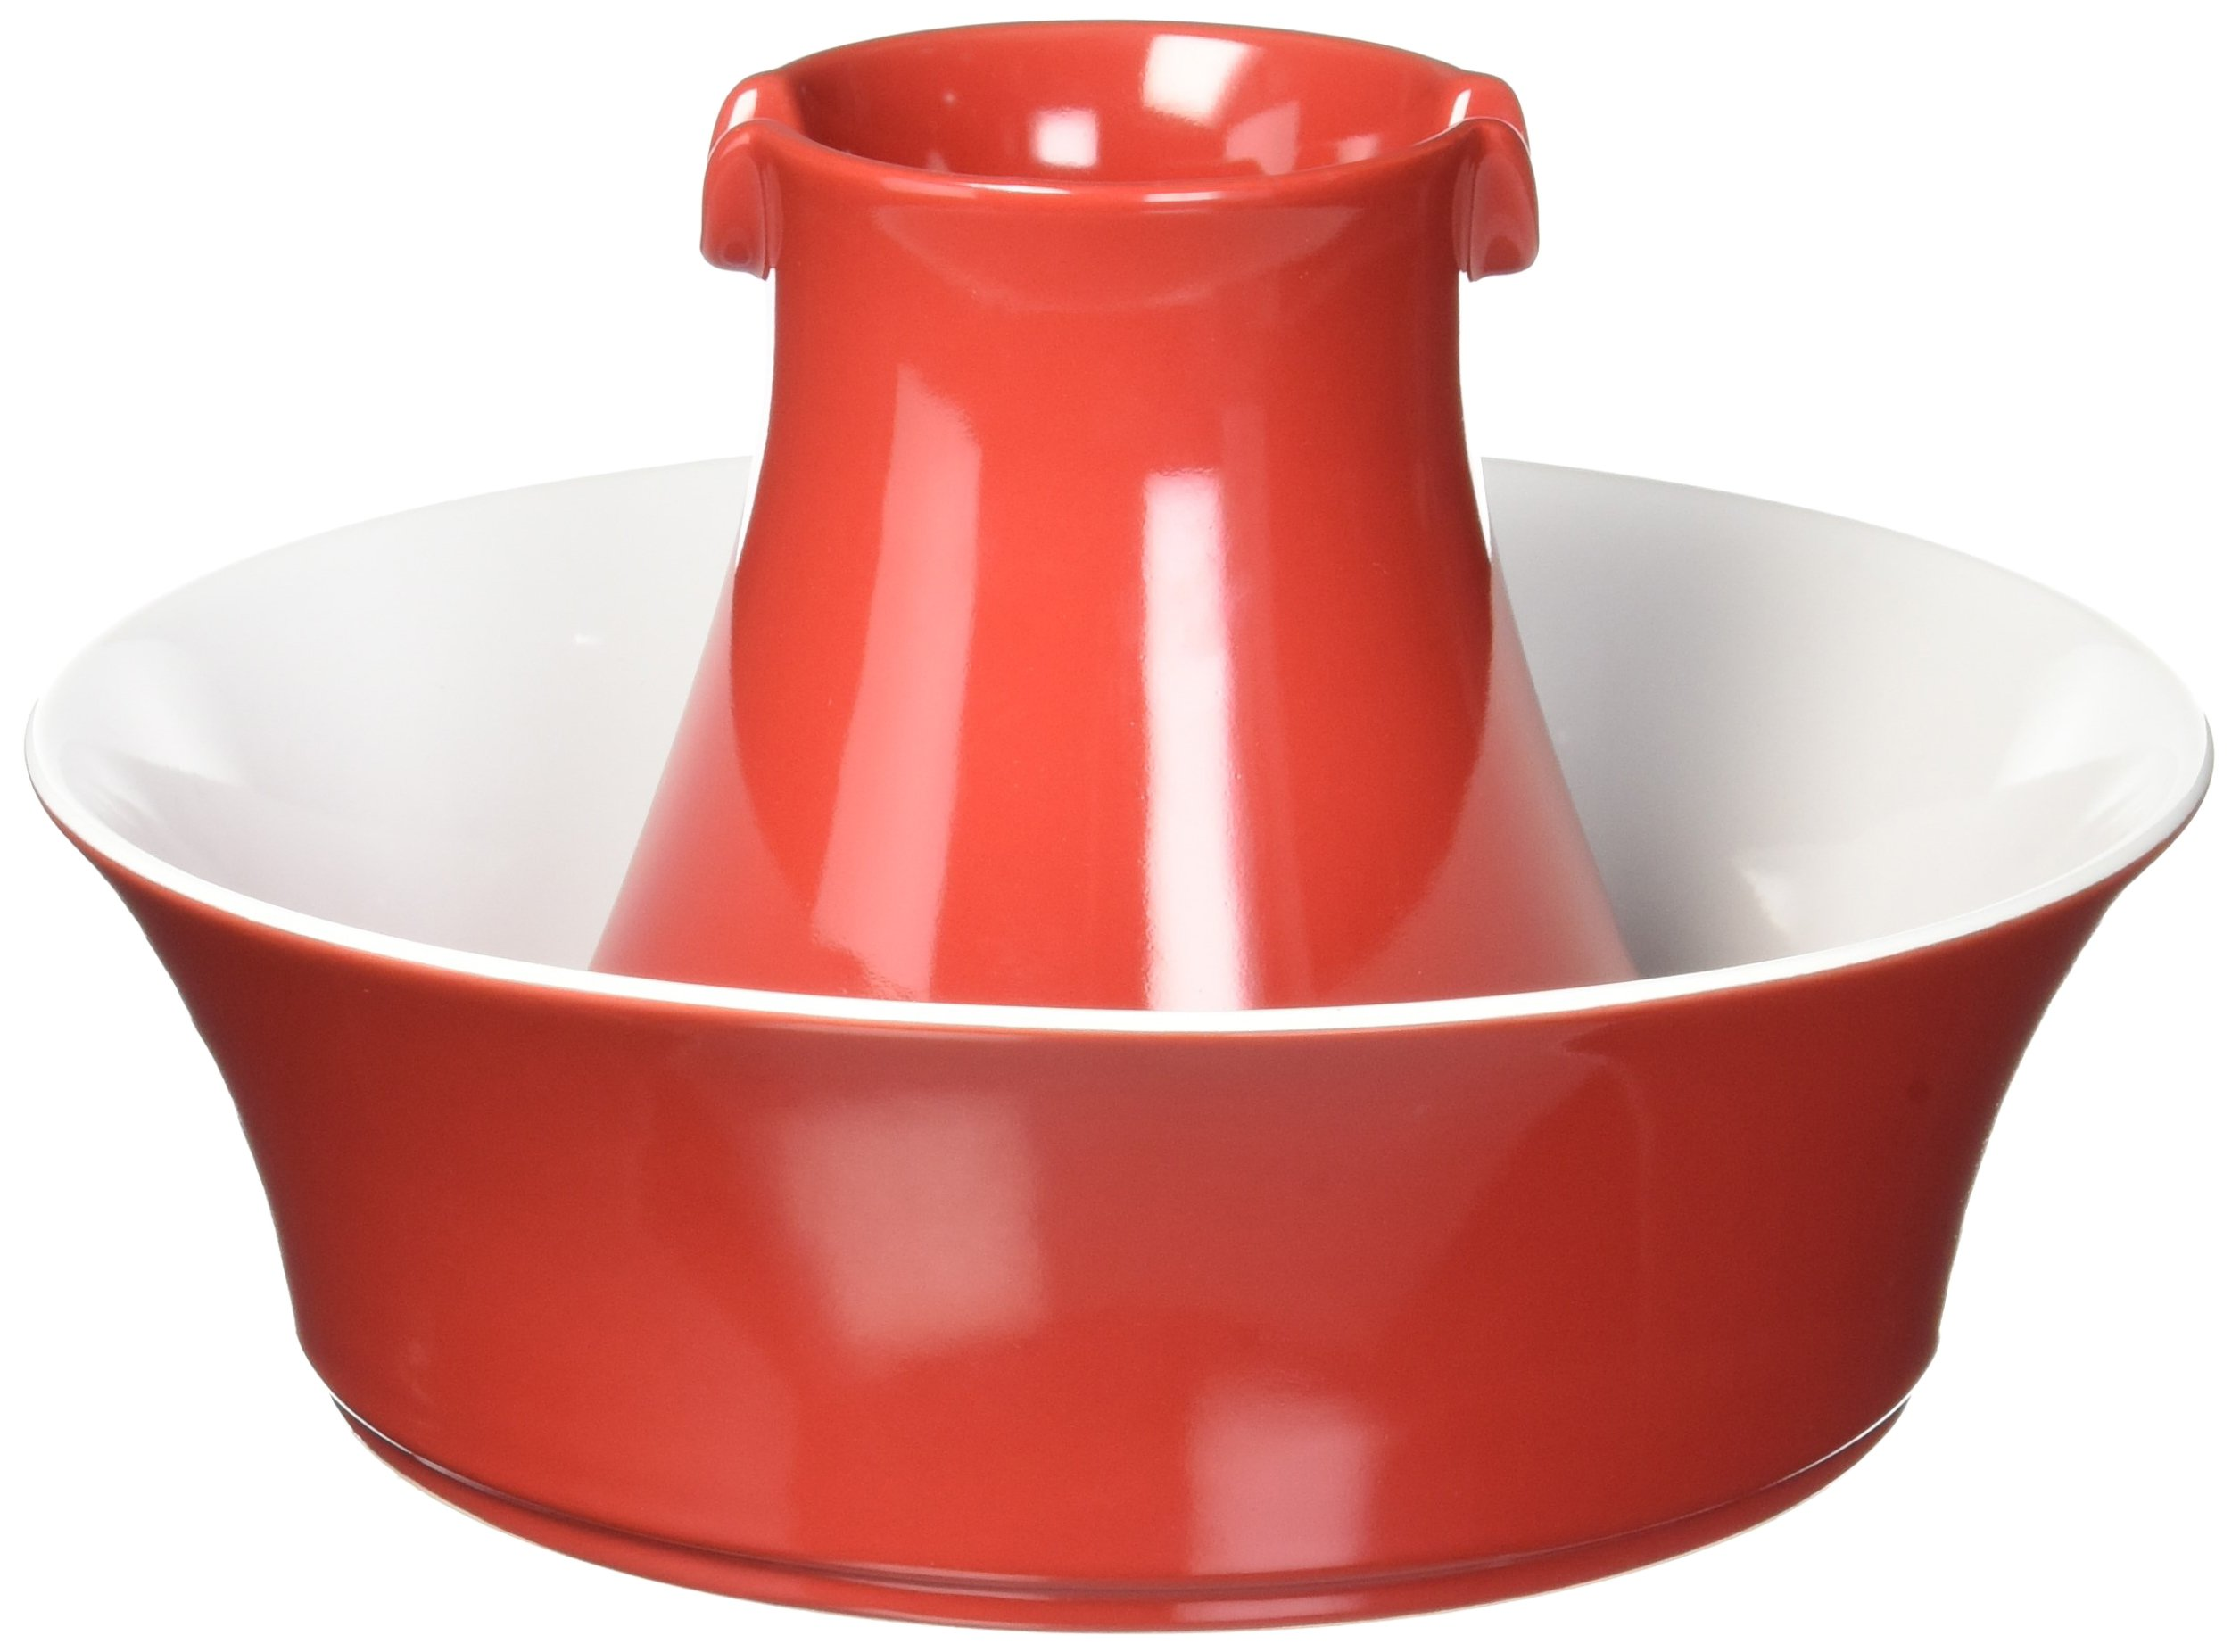 PetSafe Drinkwell Avalon Ceramic Dog and Cat Water Fountain, Red, 70 oz.